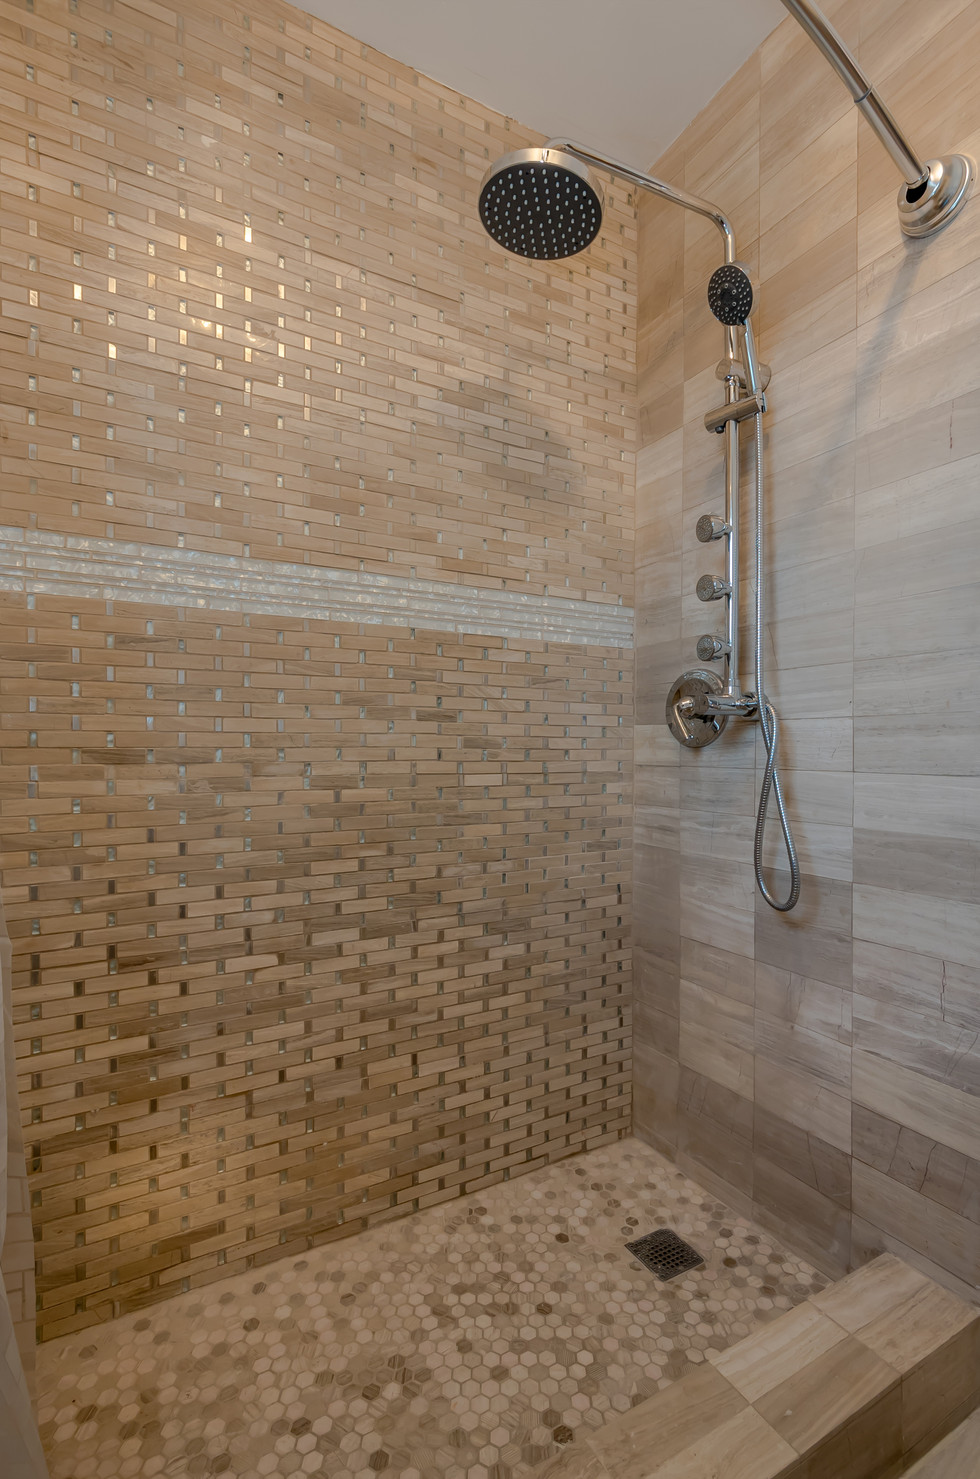 Custom Master Bathroom Shower Remodel Featuring Immaculate Tile Work & Shower Bar